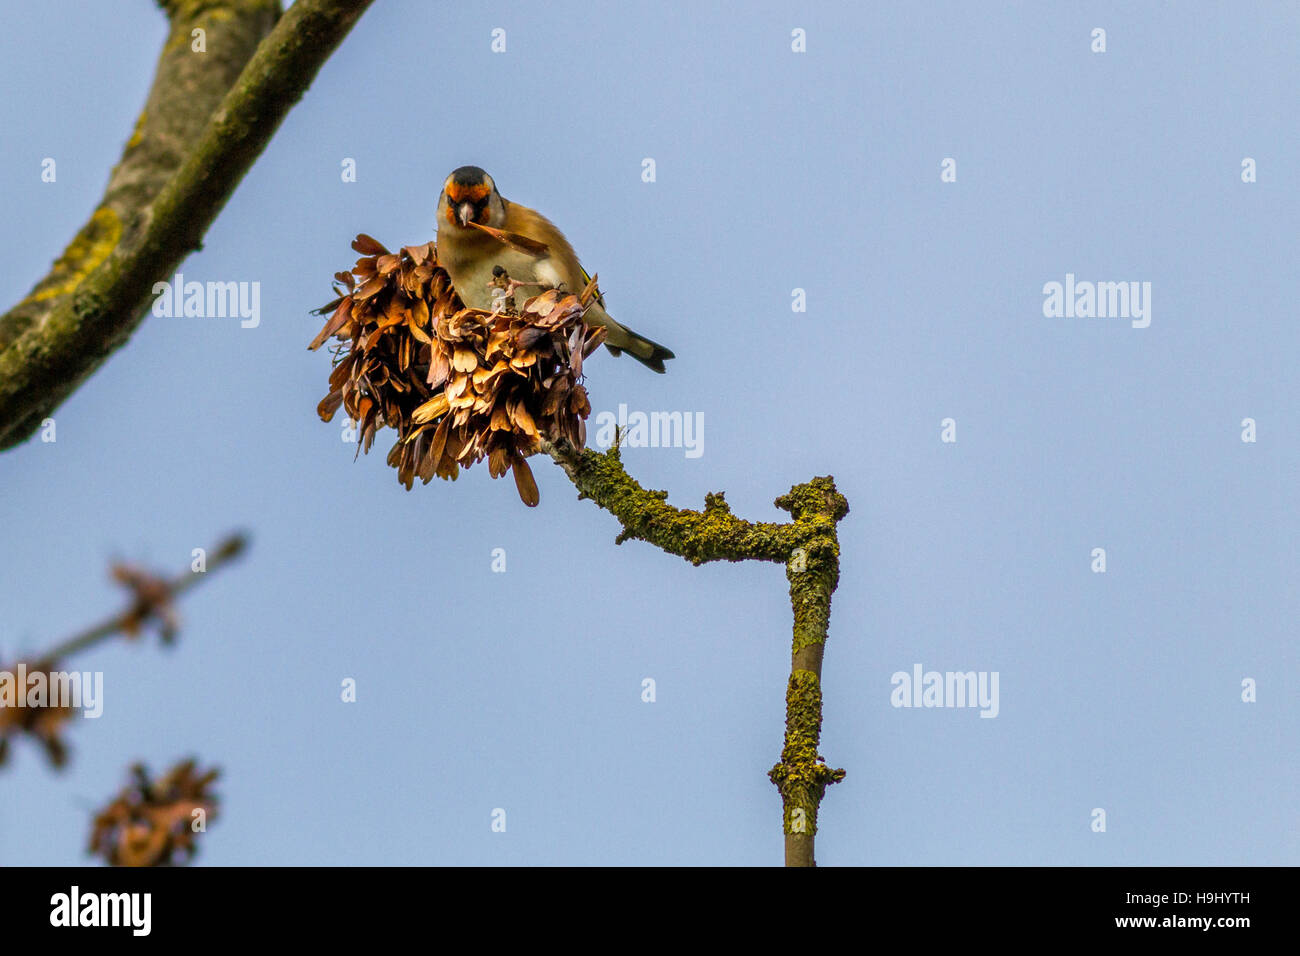 Goldfinch (Carduelis carduelis) eating seeds from a tree, Yorkshire, UK - Stock Image